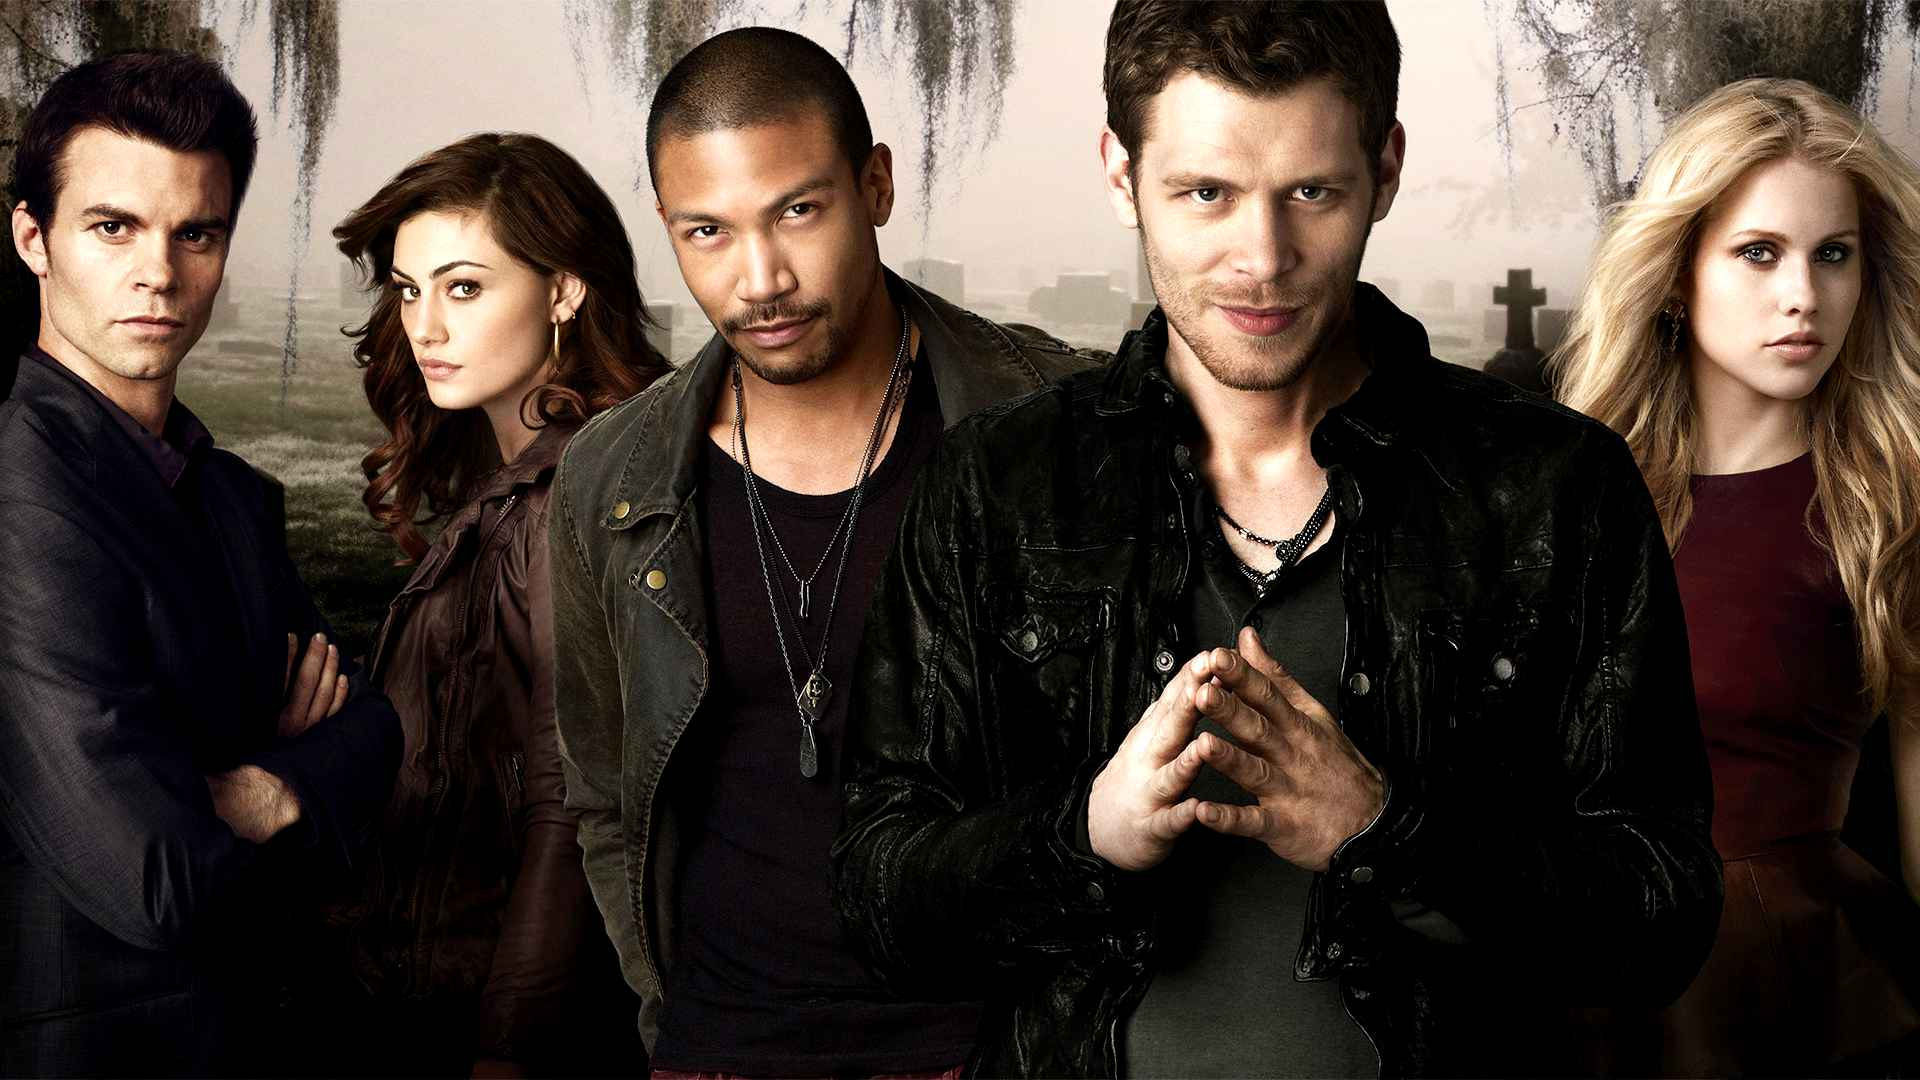 Veja cartaz, cena e vídeo de bastidores da 5ª temporada de The Originals